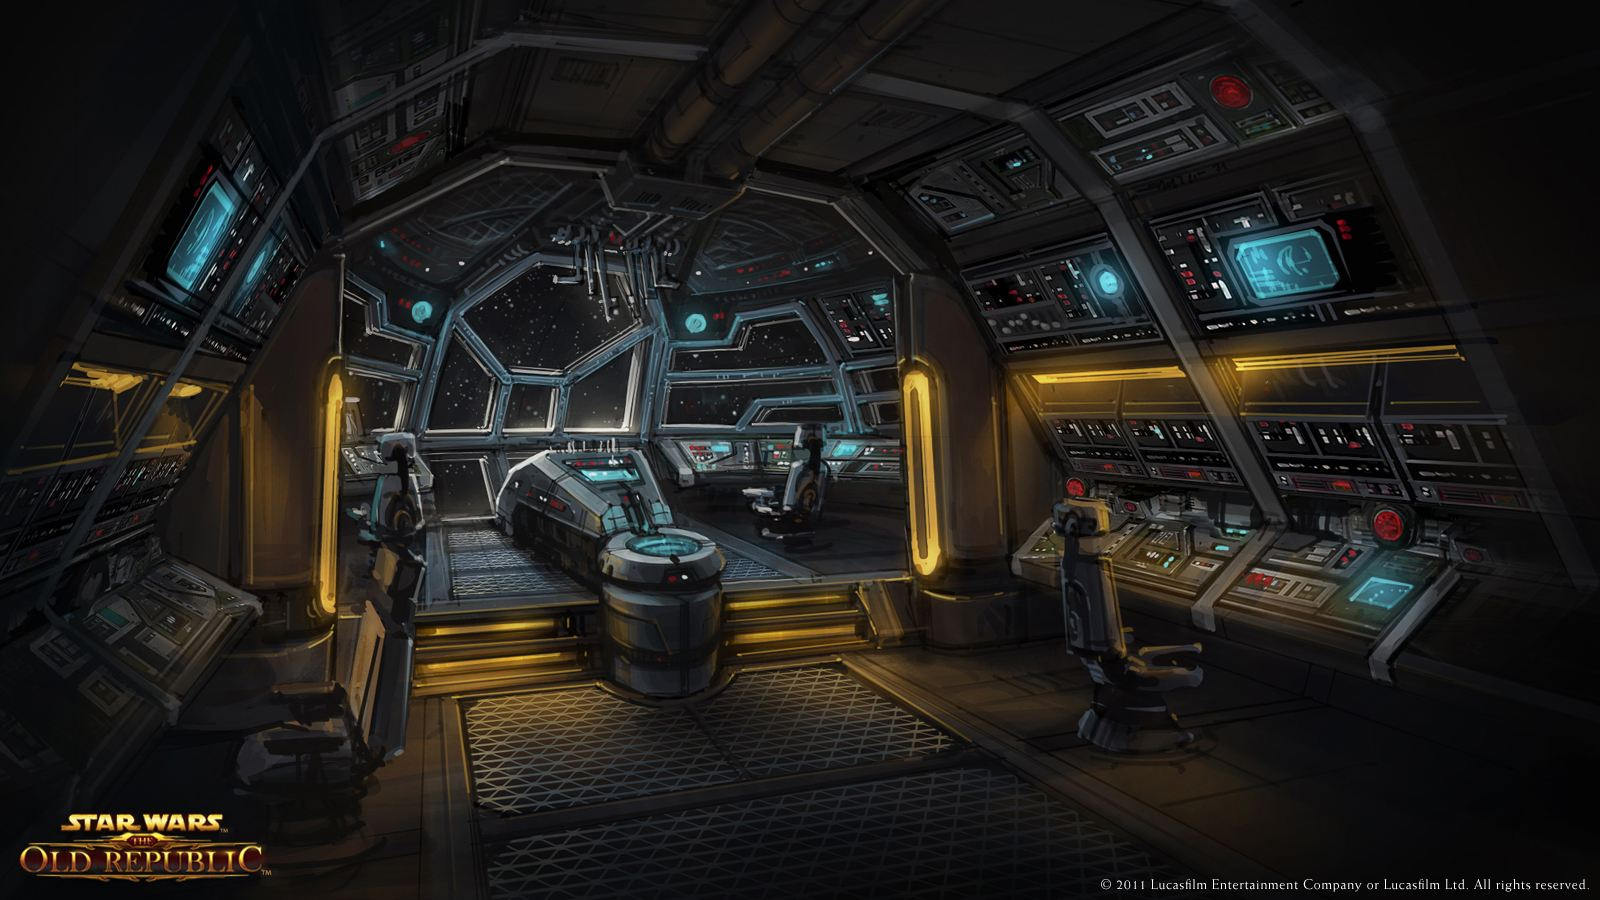 Star Wars interior nave